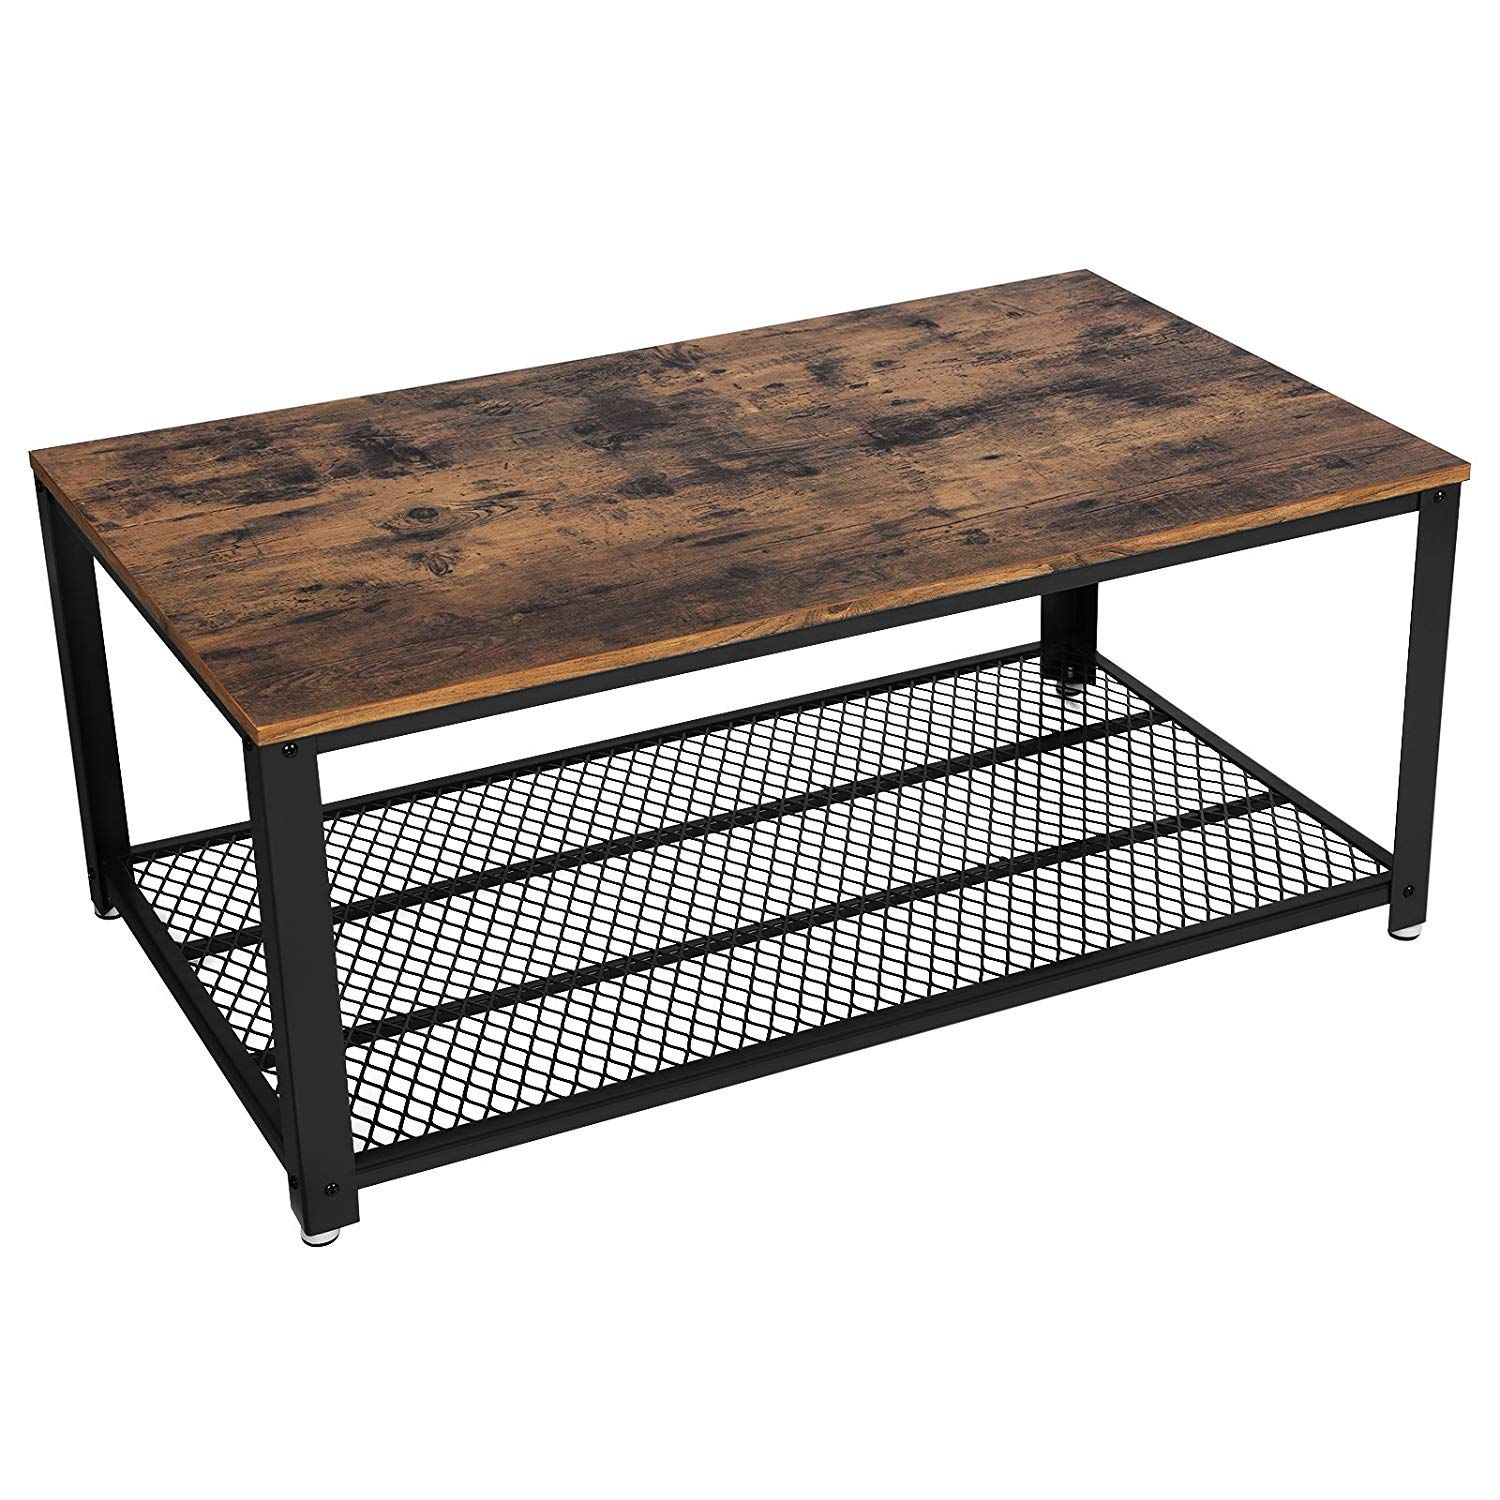 Songmics Vintage Coffee Table Cocktail Table With Storage Shelf For Living Room Wood Look Antique Coffee Tables Coffee Table Metal Frame Coffee Table Vintage